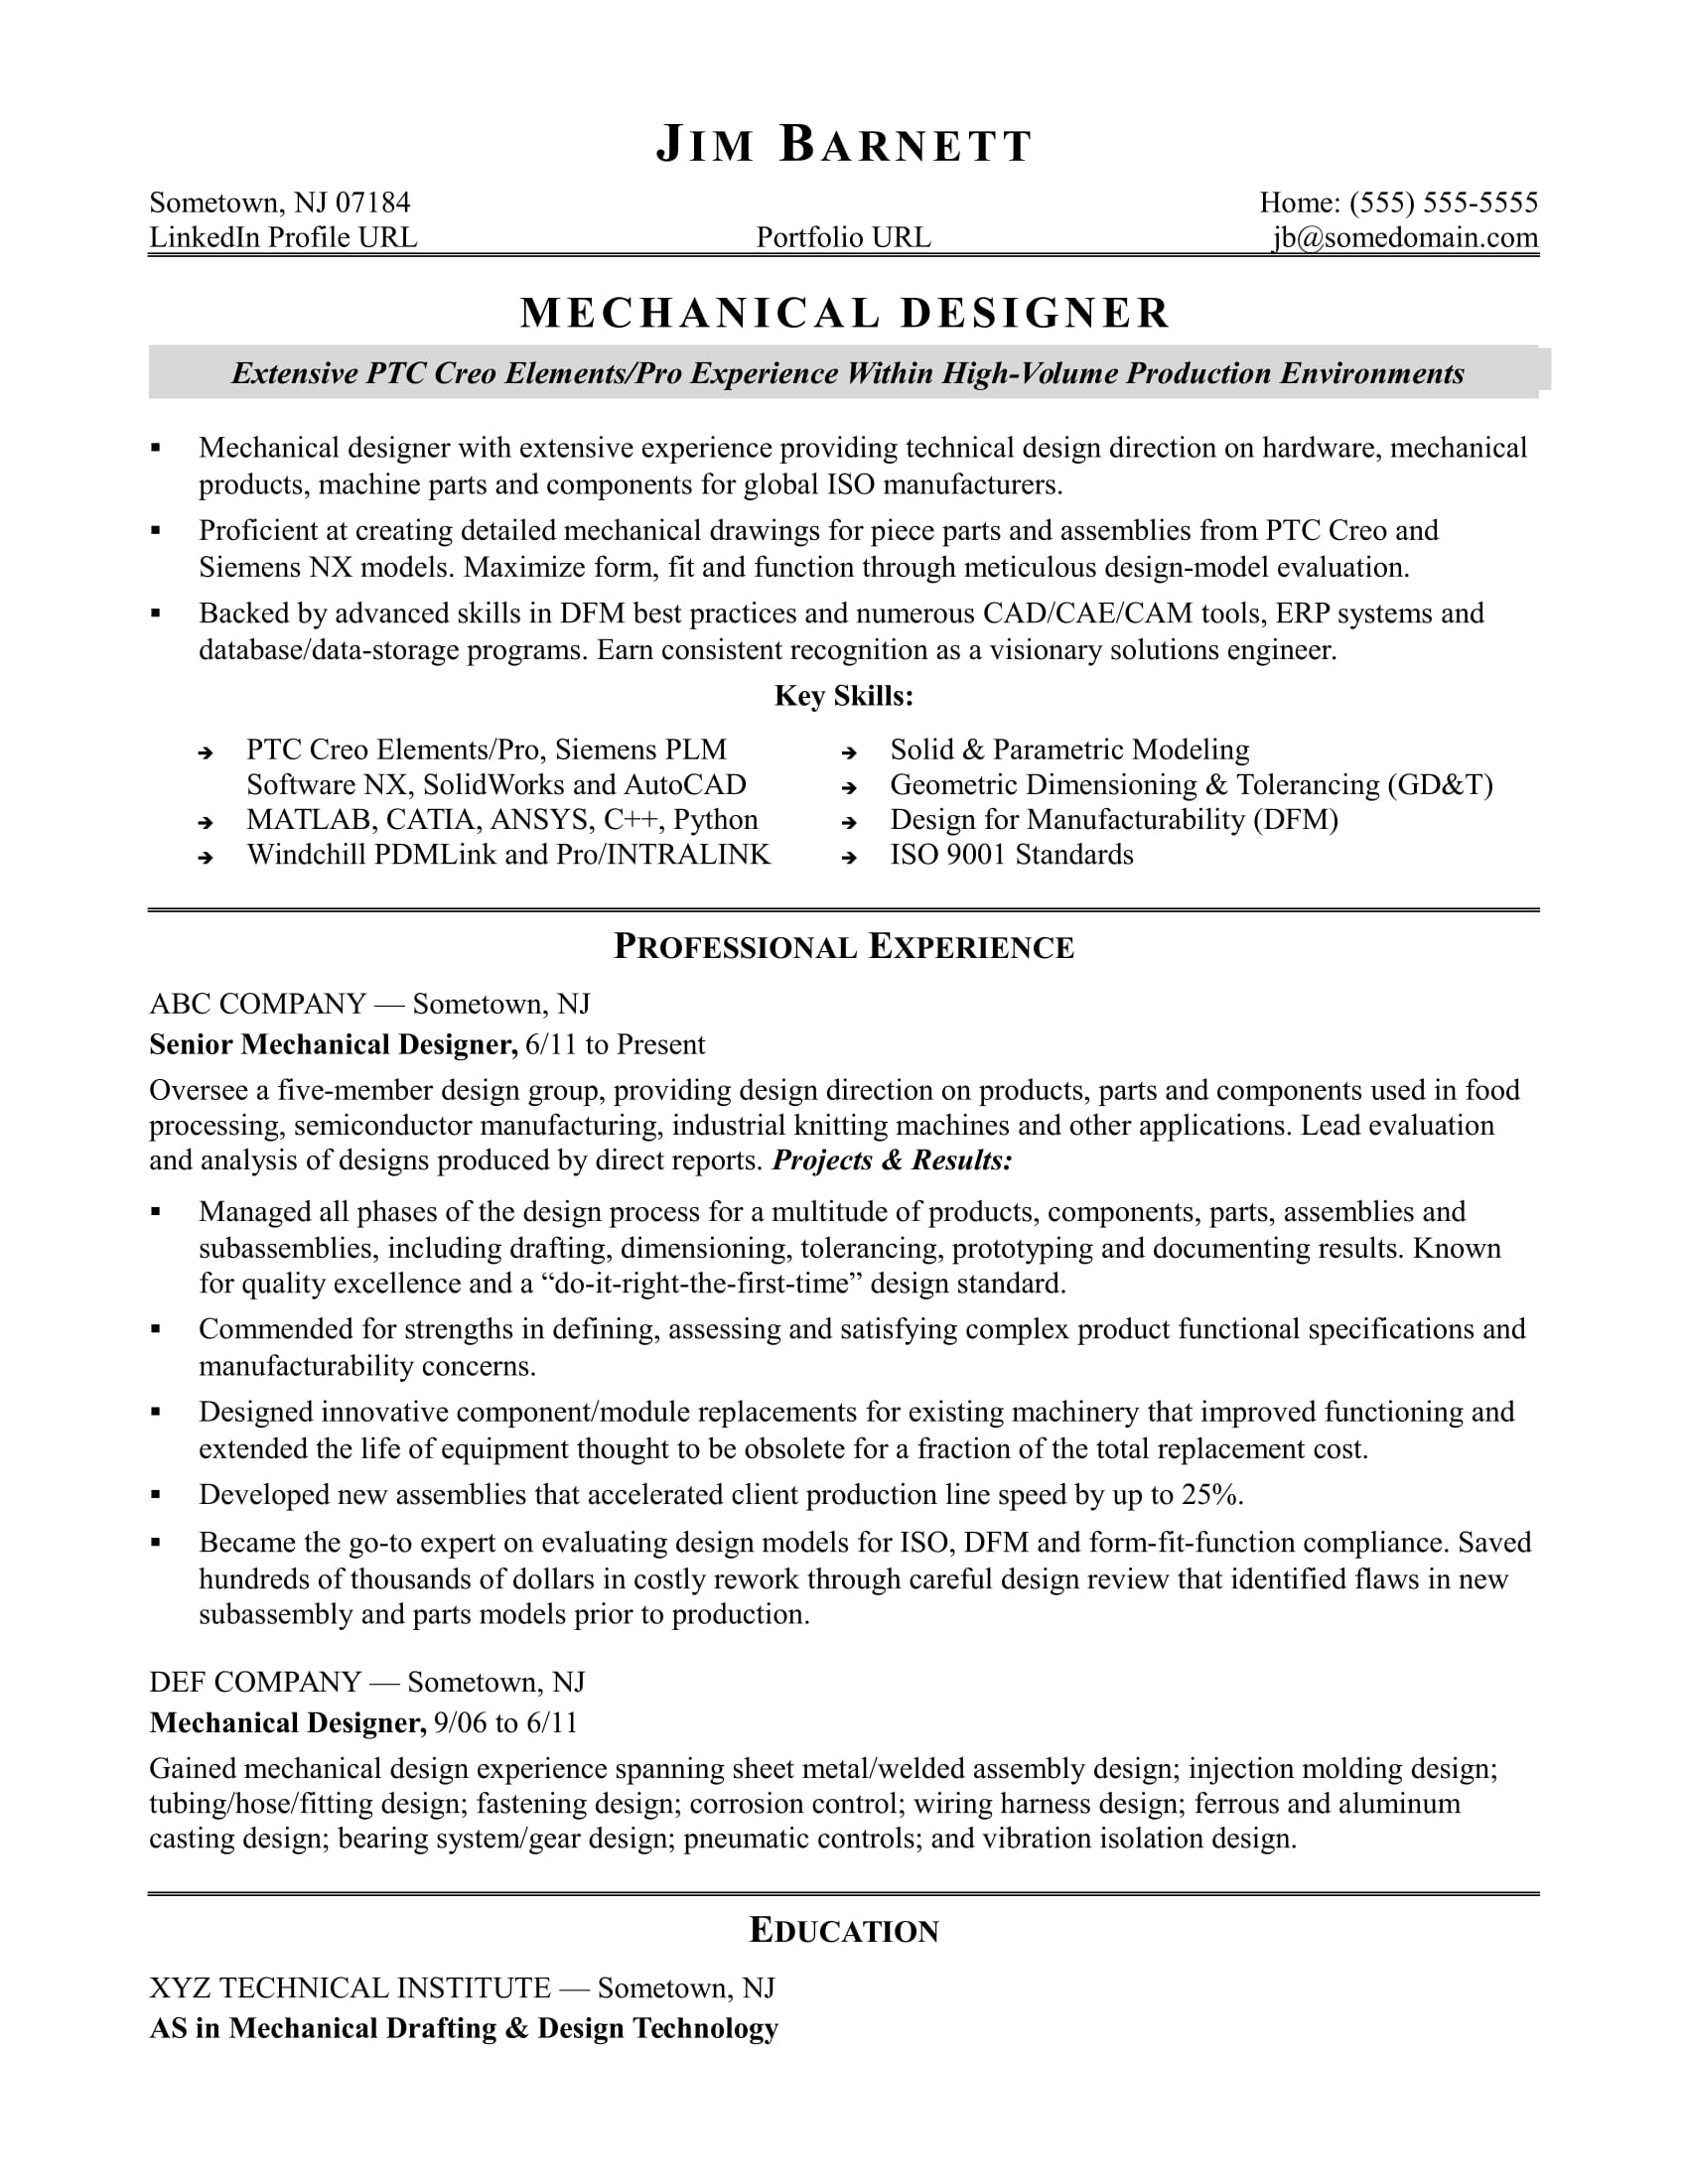 sample resume for an experienced mechanical designer - Design Engineer Resume Example